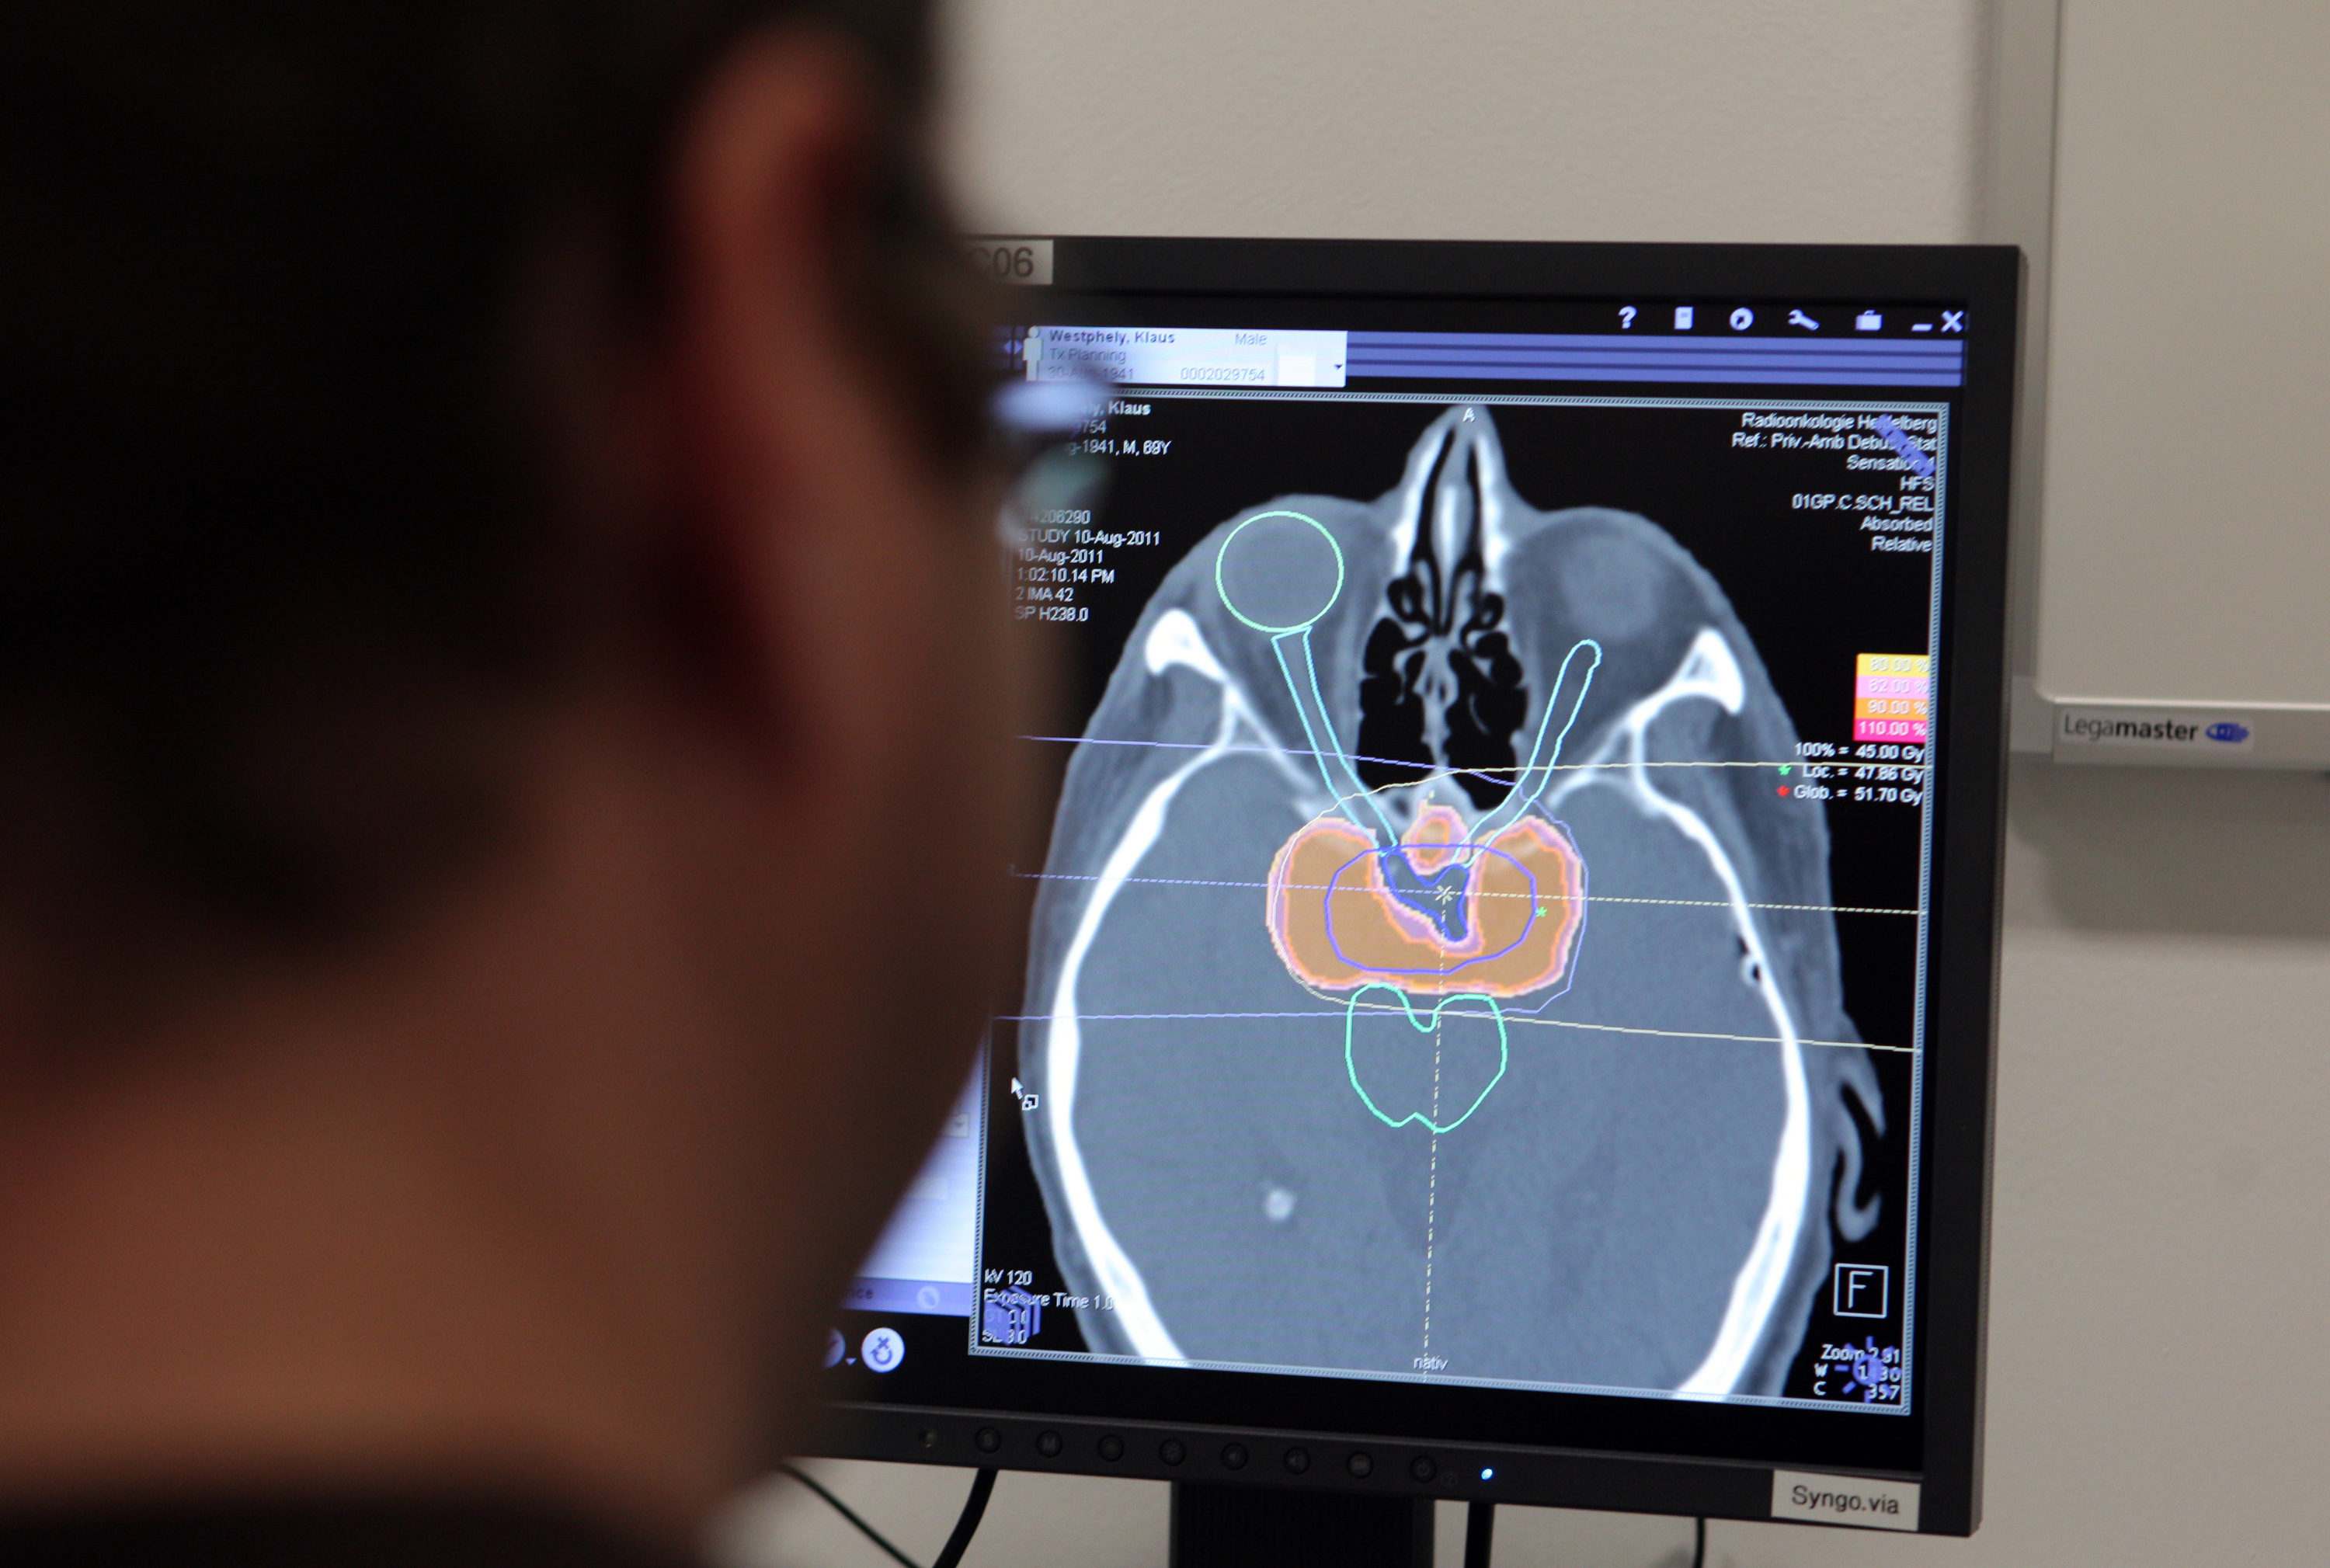 A medical technician monitors a scan of a patient's brain during cancer treatment in Germany.